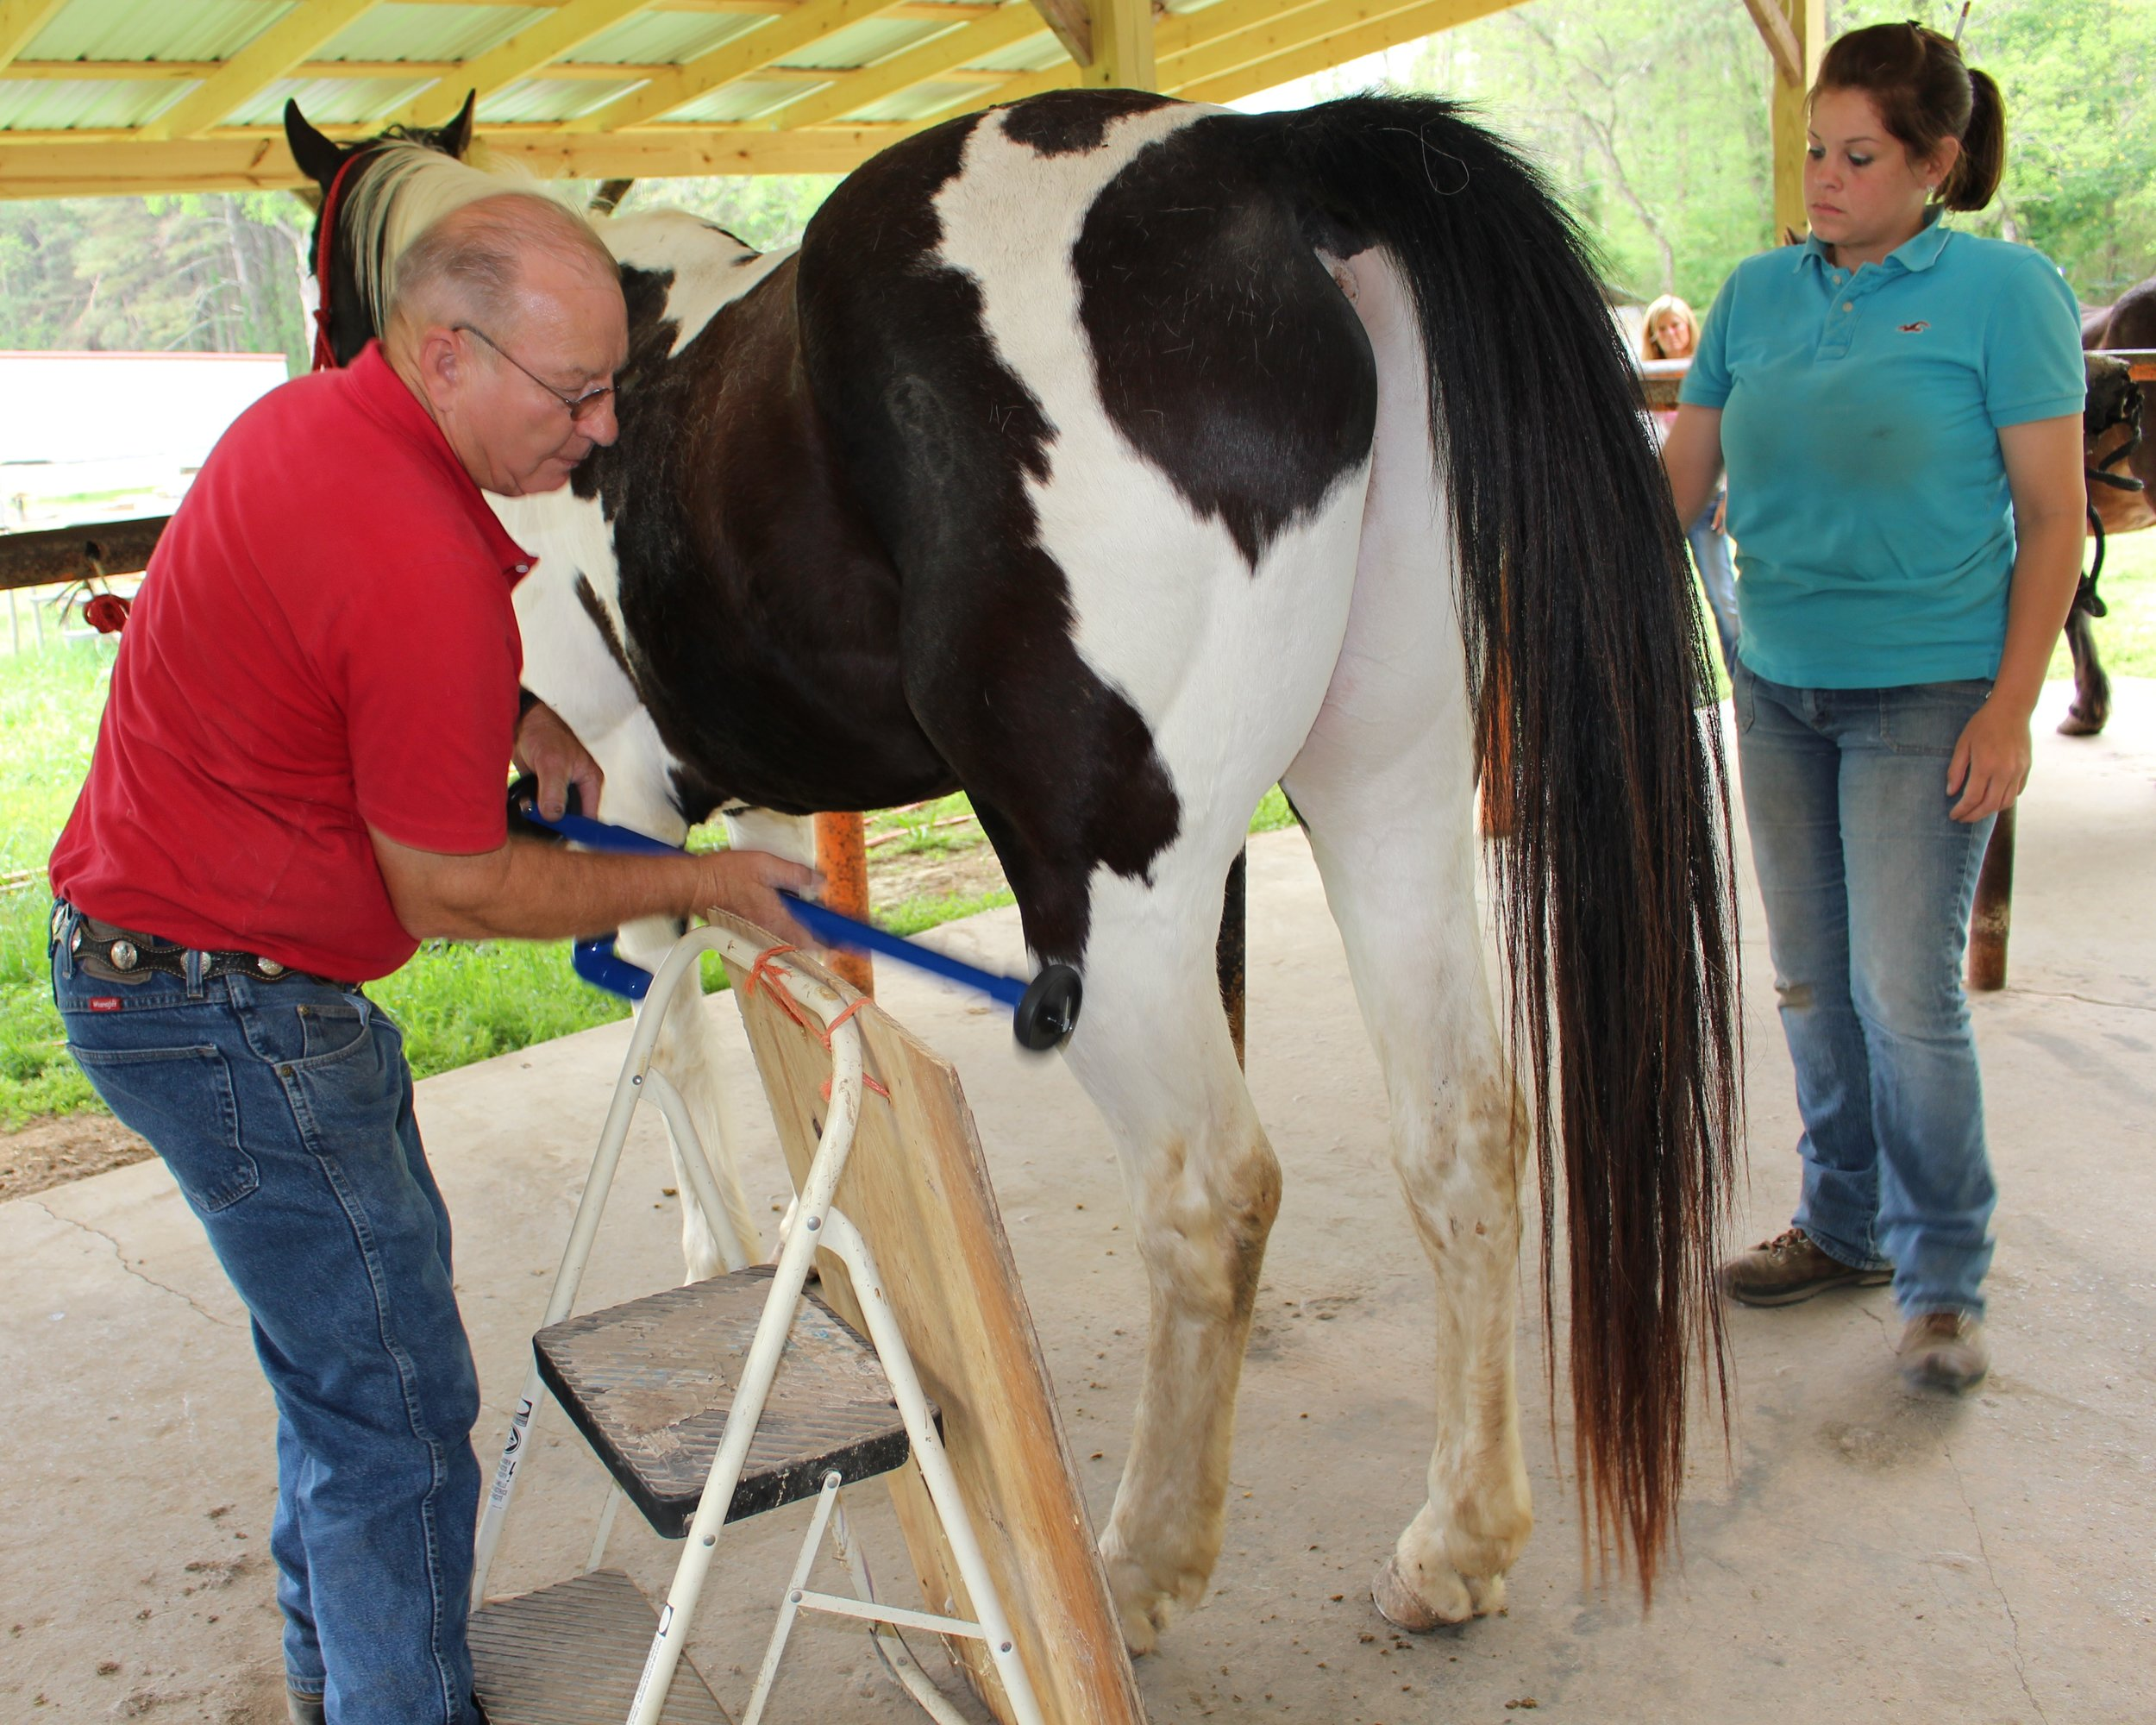 Dan Marcum EFT Instructor with Ashle Eidiener, Farrier, demontrating his patented D-Stressor Tools for Horses.